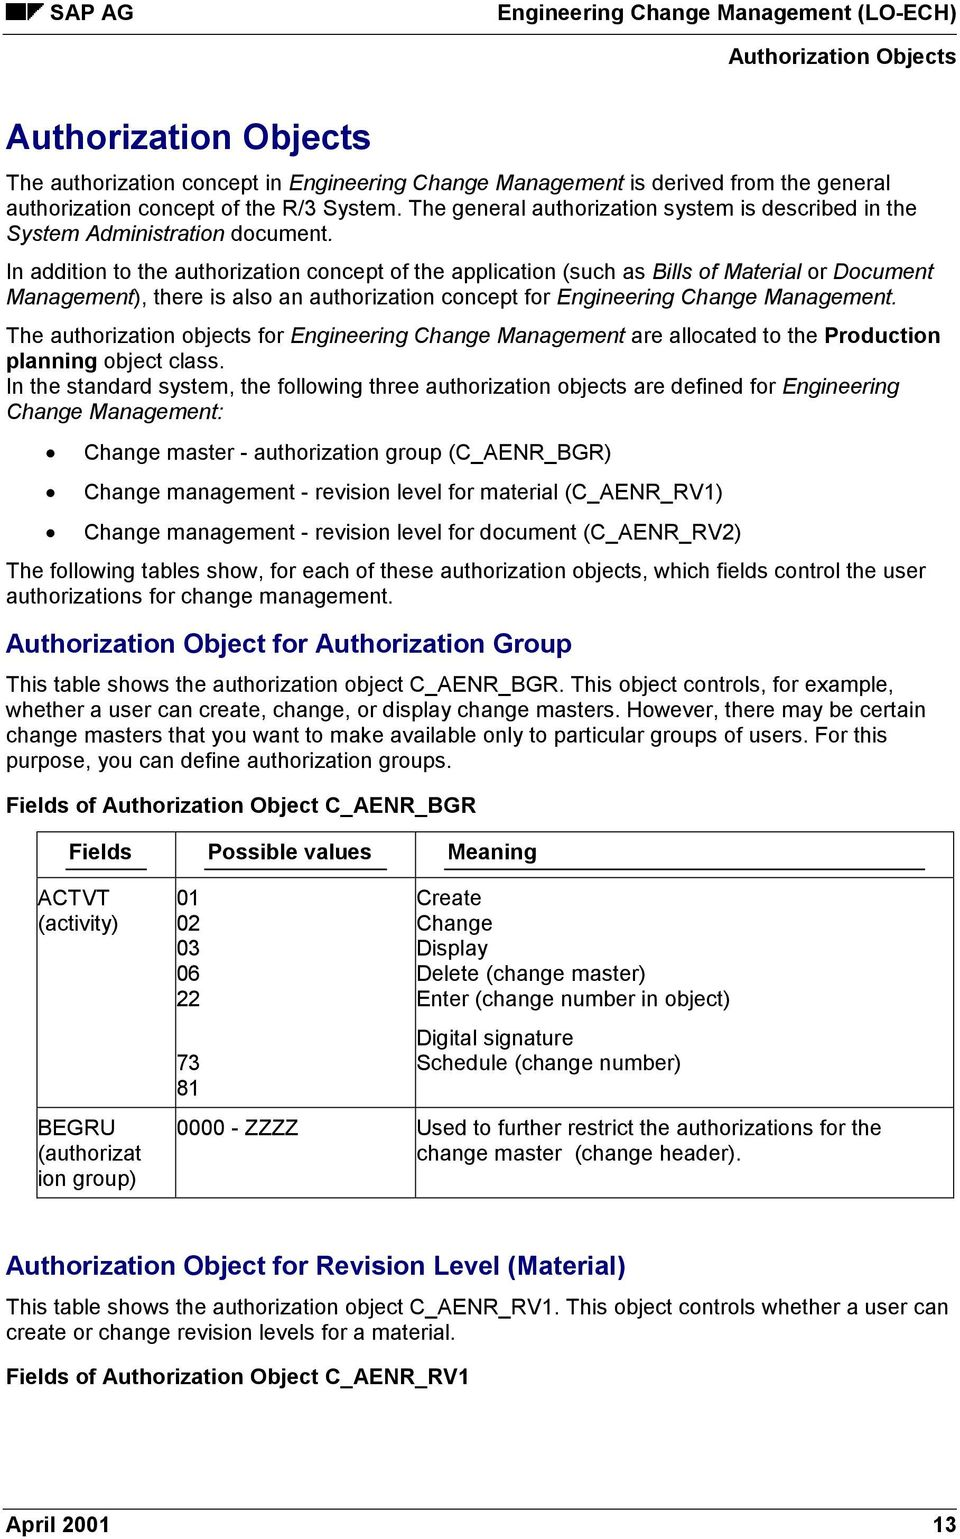 In addition to the authorization concept of the application (such as Bills of Material or Document Management), there is also an authorization concept for Engineering Change Management.